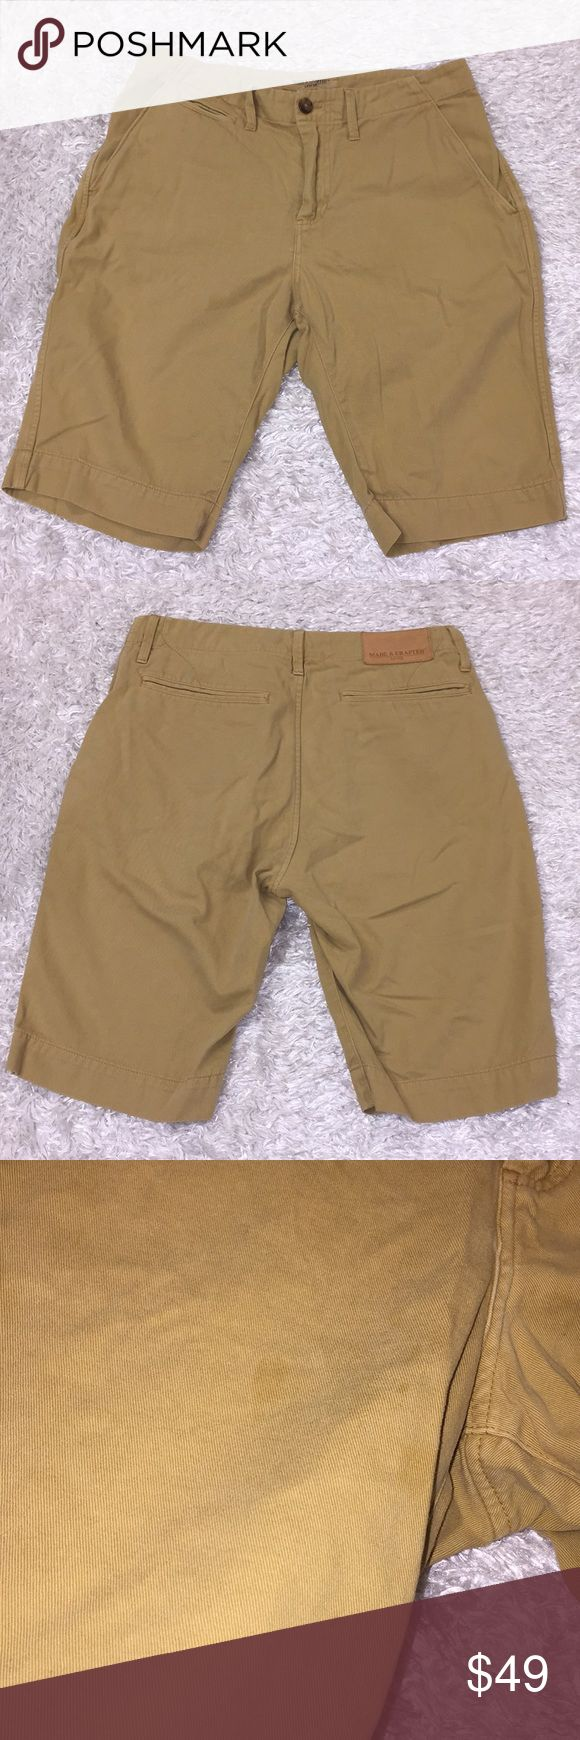 "Made & Crafted Levi Bermuda Shorts Size 28, great condition. Small blemishes on front. Color is a yellow Khaki color. Inseam: 10"". Waist: 14"". Rise: 10"". Feel free to ask any questions! No trades/model photos sorry. Offers thru offer button only! Items ship same day, M-F if purchased before 3pm PST. 😊x Levi's Shorts"